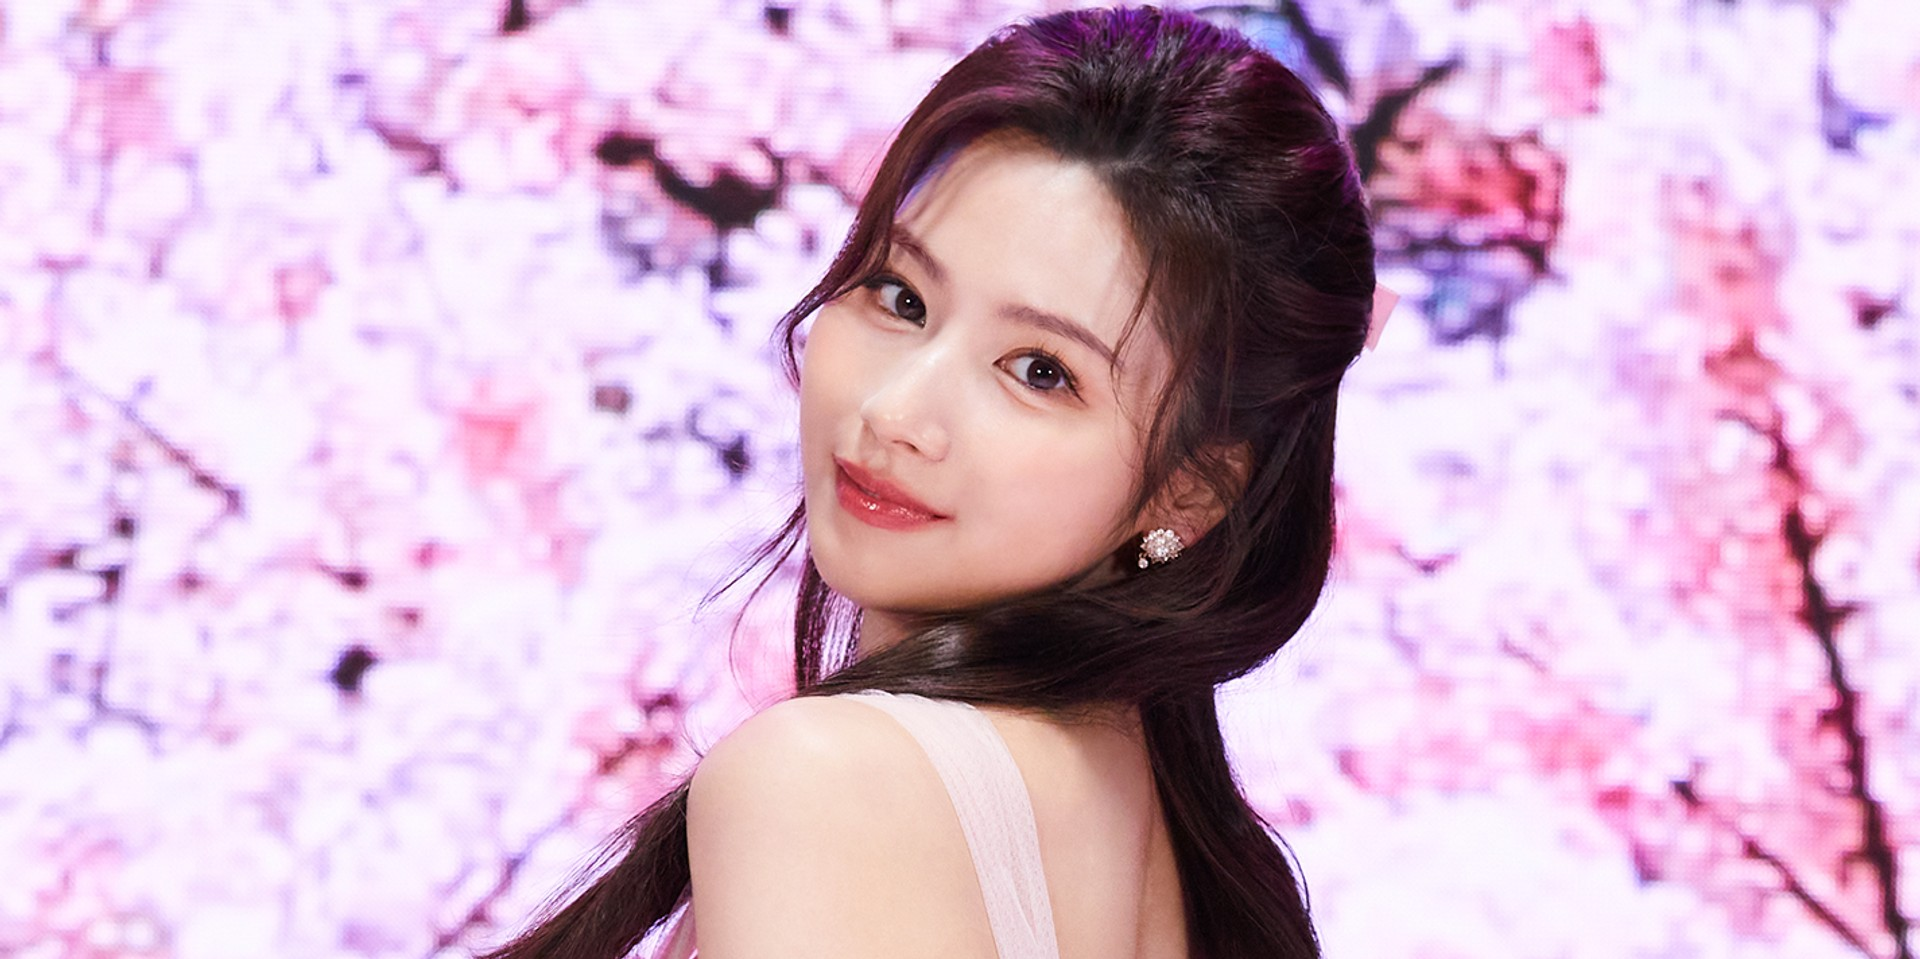 TWICE's SANA drops cover of Kobukuro's 'Graduation' - listen